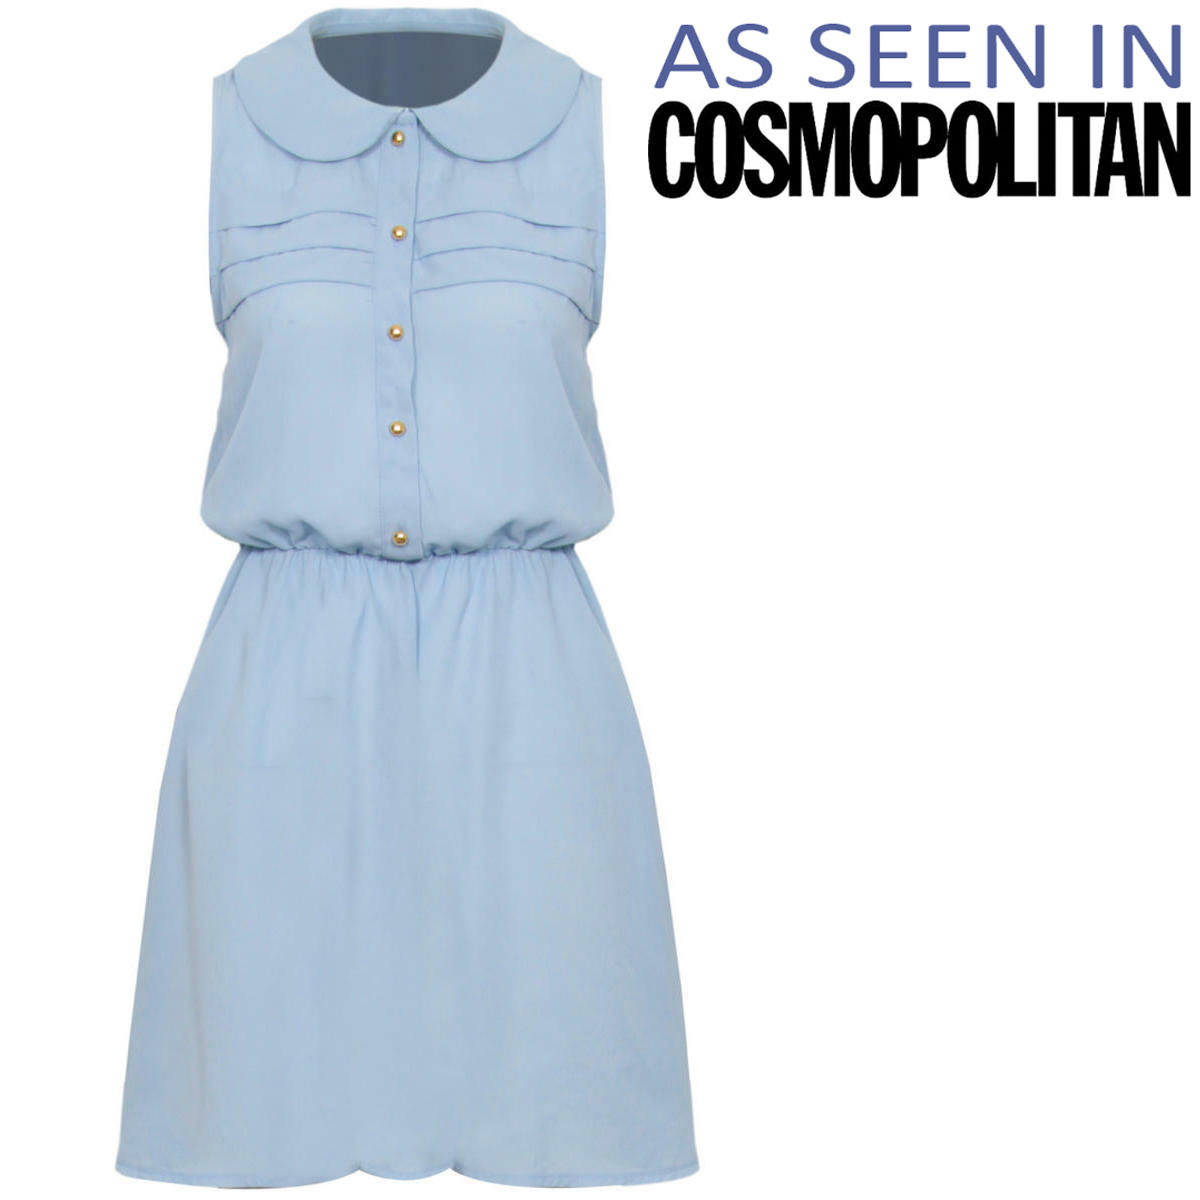 Pastel Blue Peter Pan Collar Dress Preview